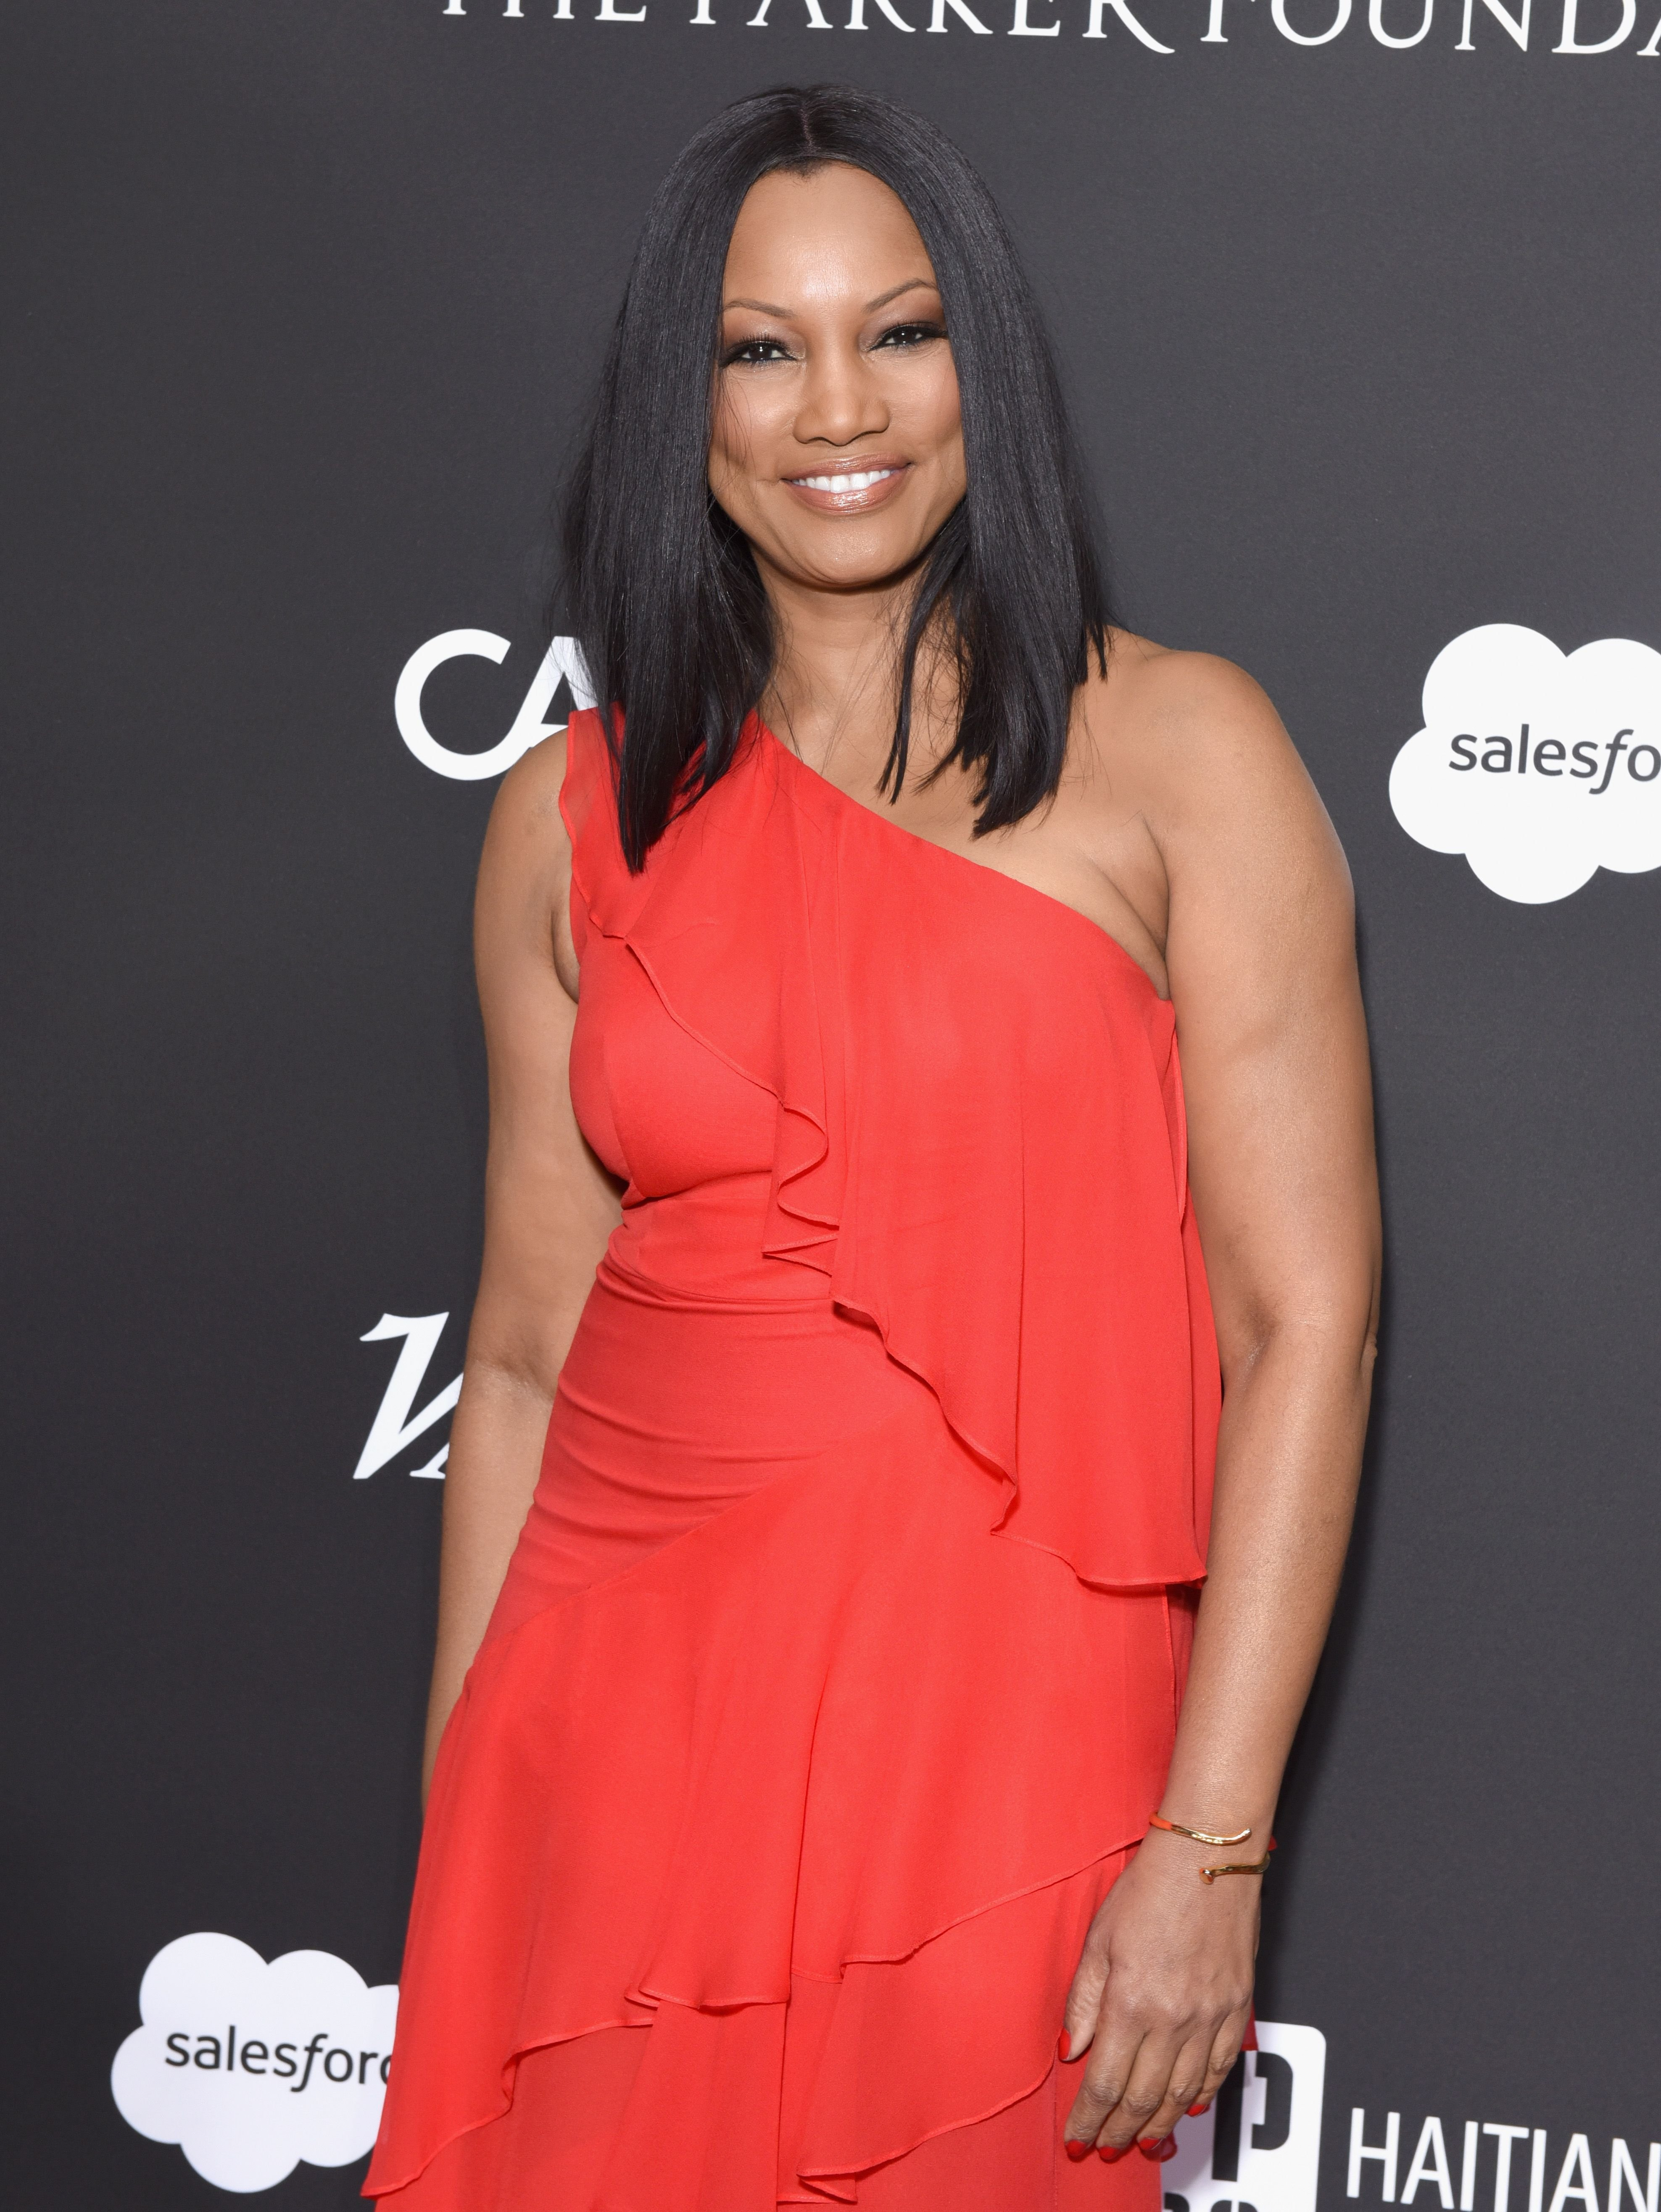 Garcelle Beauvais at the 7th Annual Sean Penn & Friends HAITI RISING Gala on January 6, 2018 in Hollywood, California.   Source: Getty Images